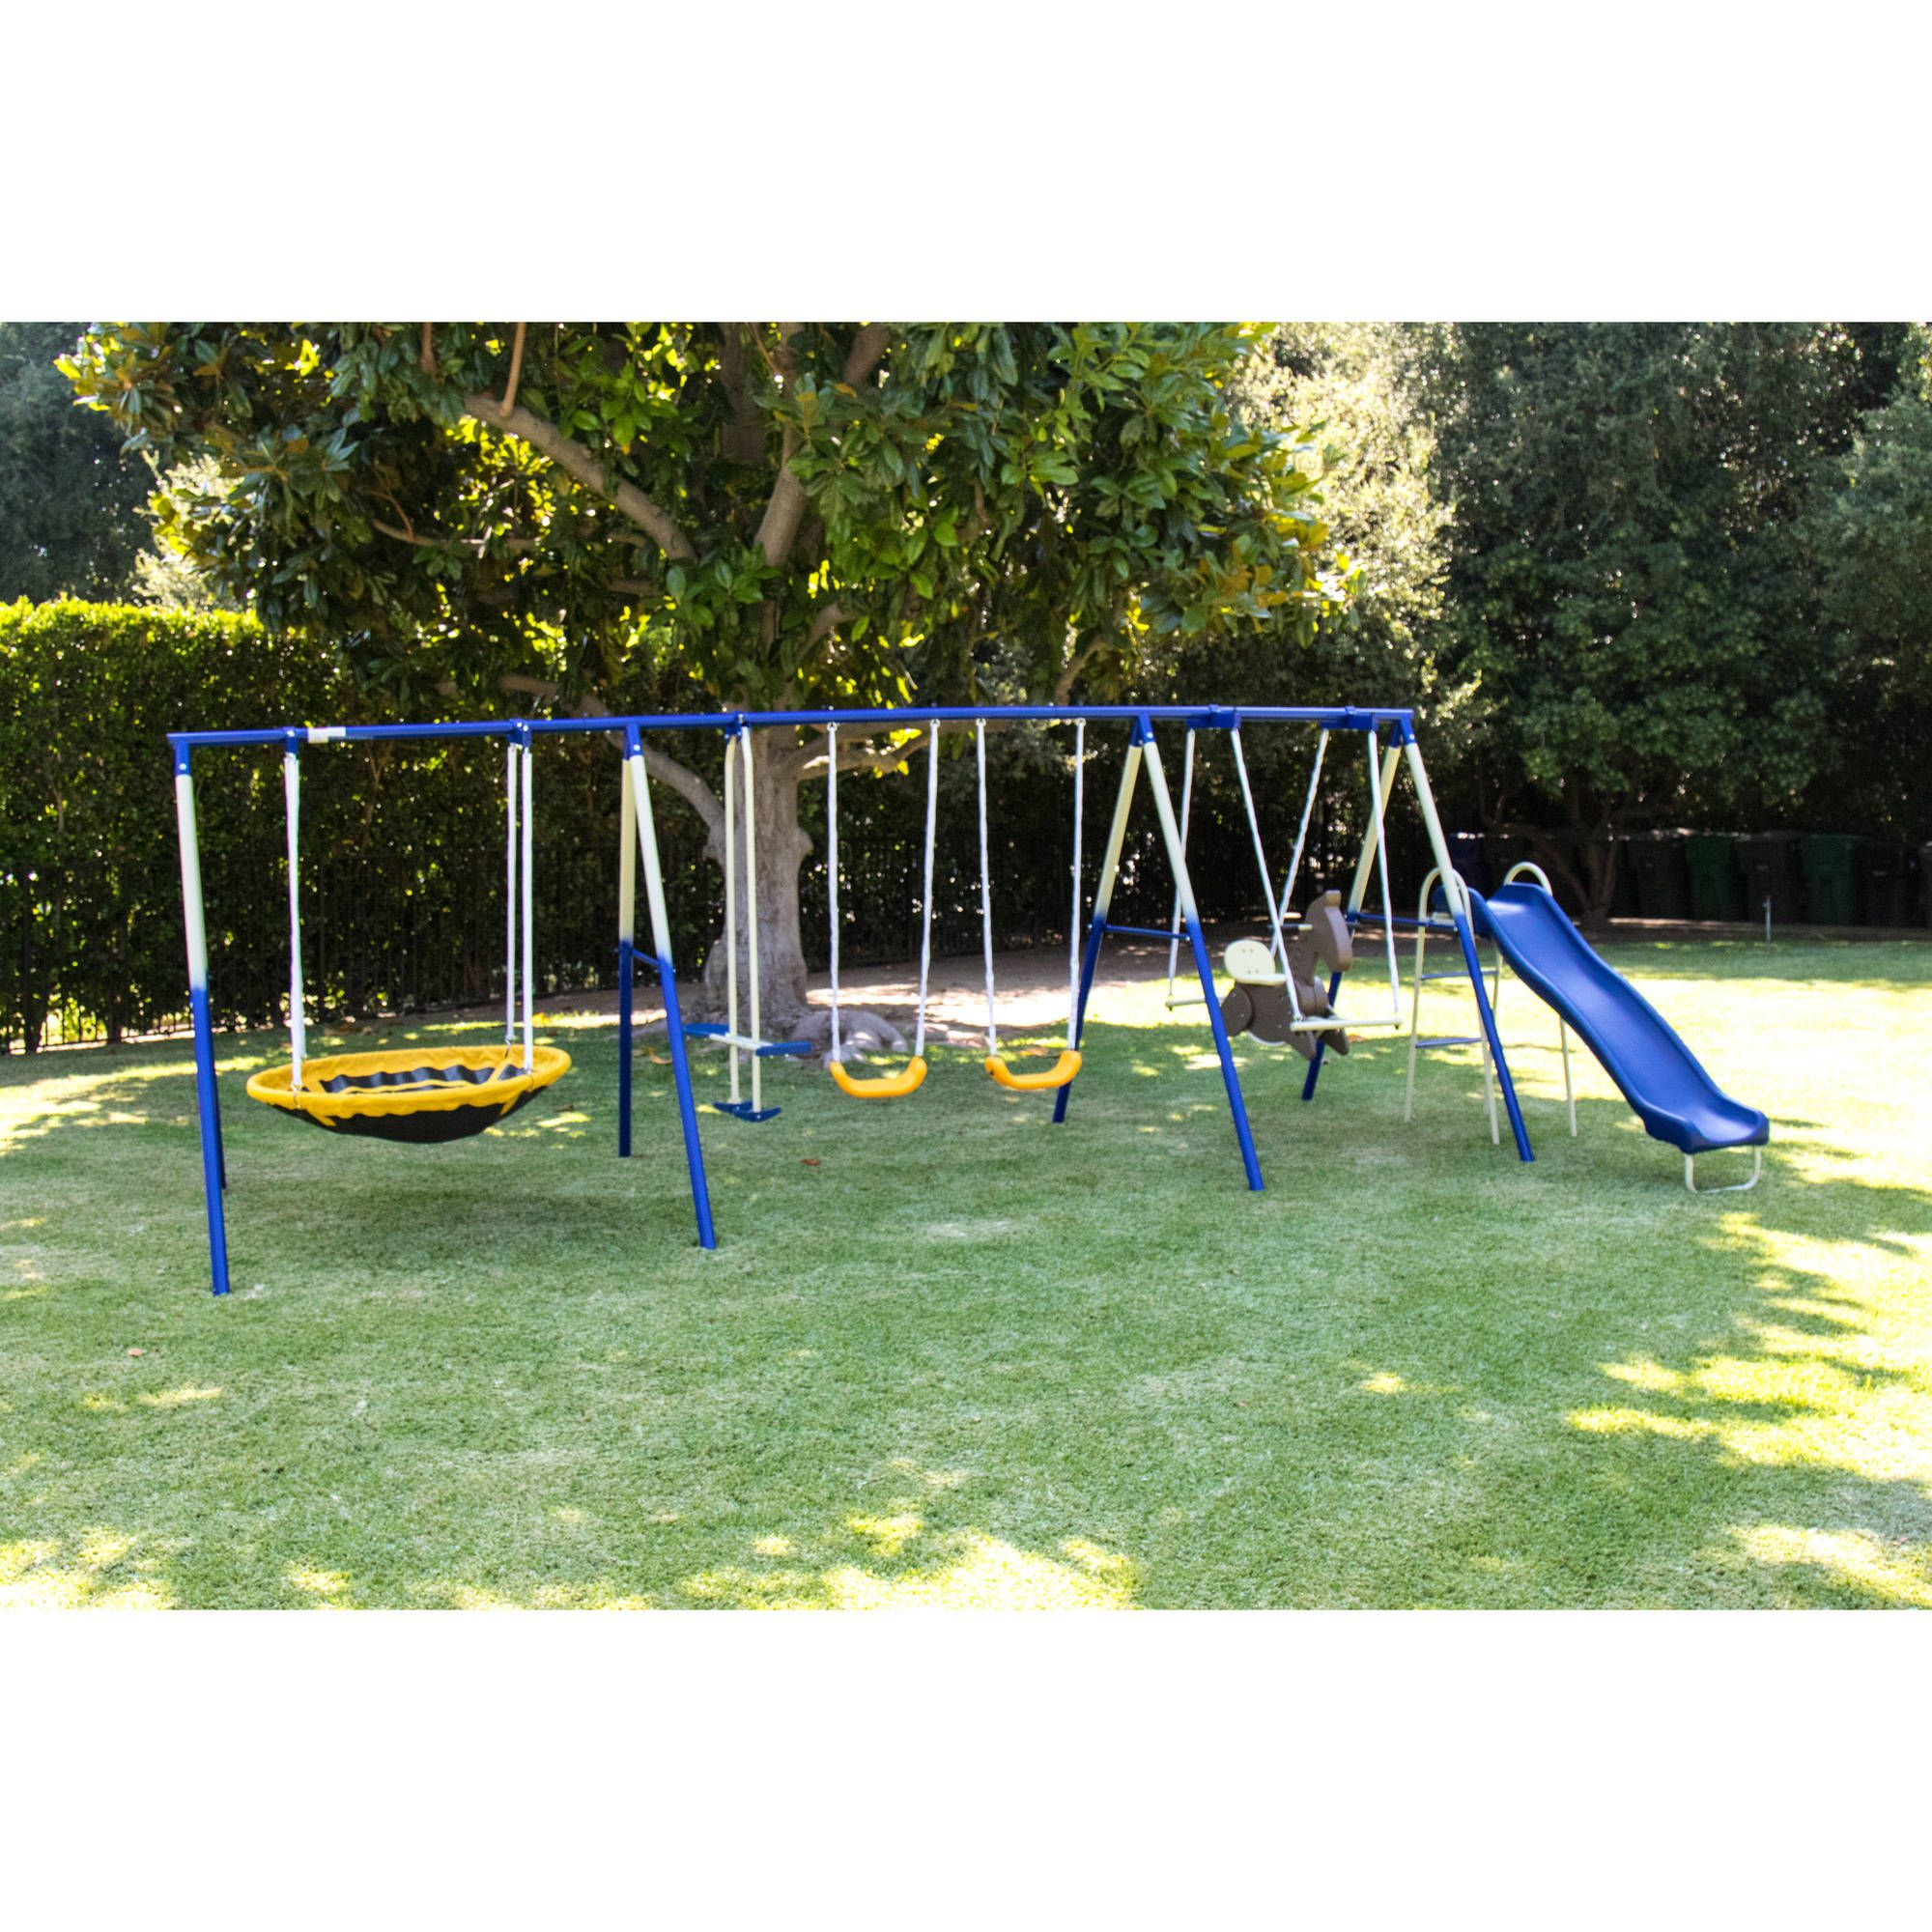 Sportspower Outdoor Super 8 Fun Metal Swing And Slide Set